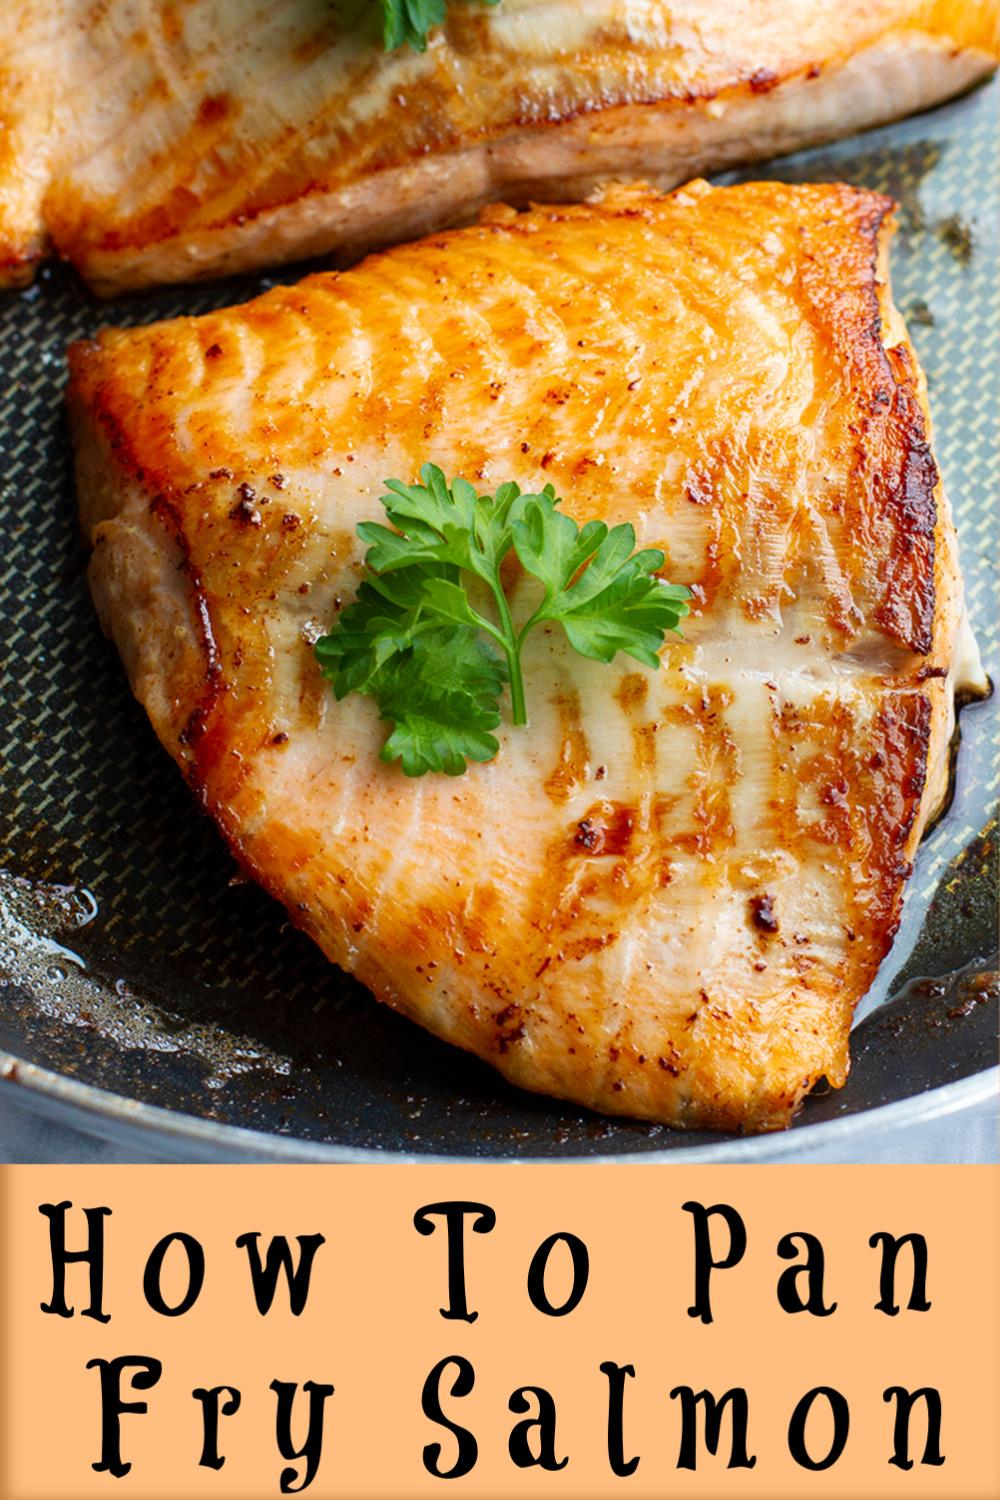 #Salmon recipe #How To Pan Fry Salmon # Salmon #Dinner #Panfried # Recipe # recipes